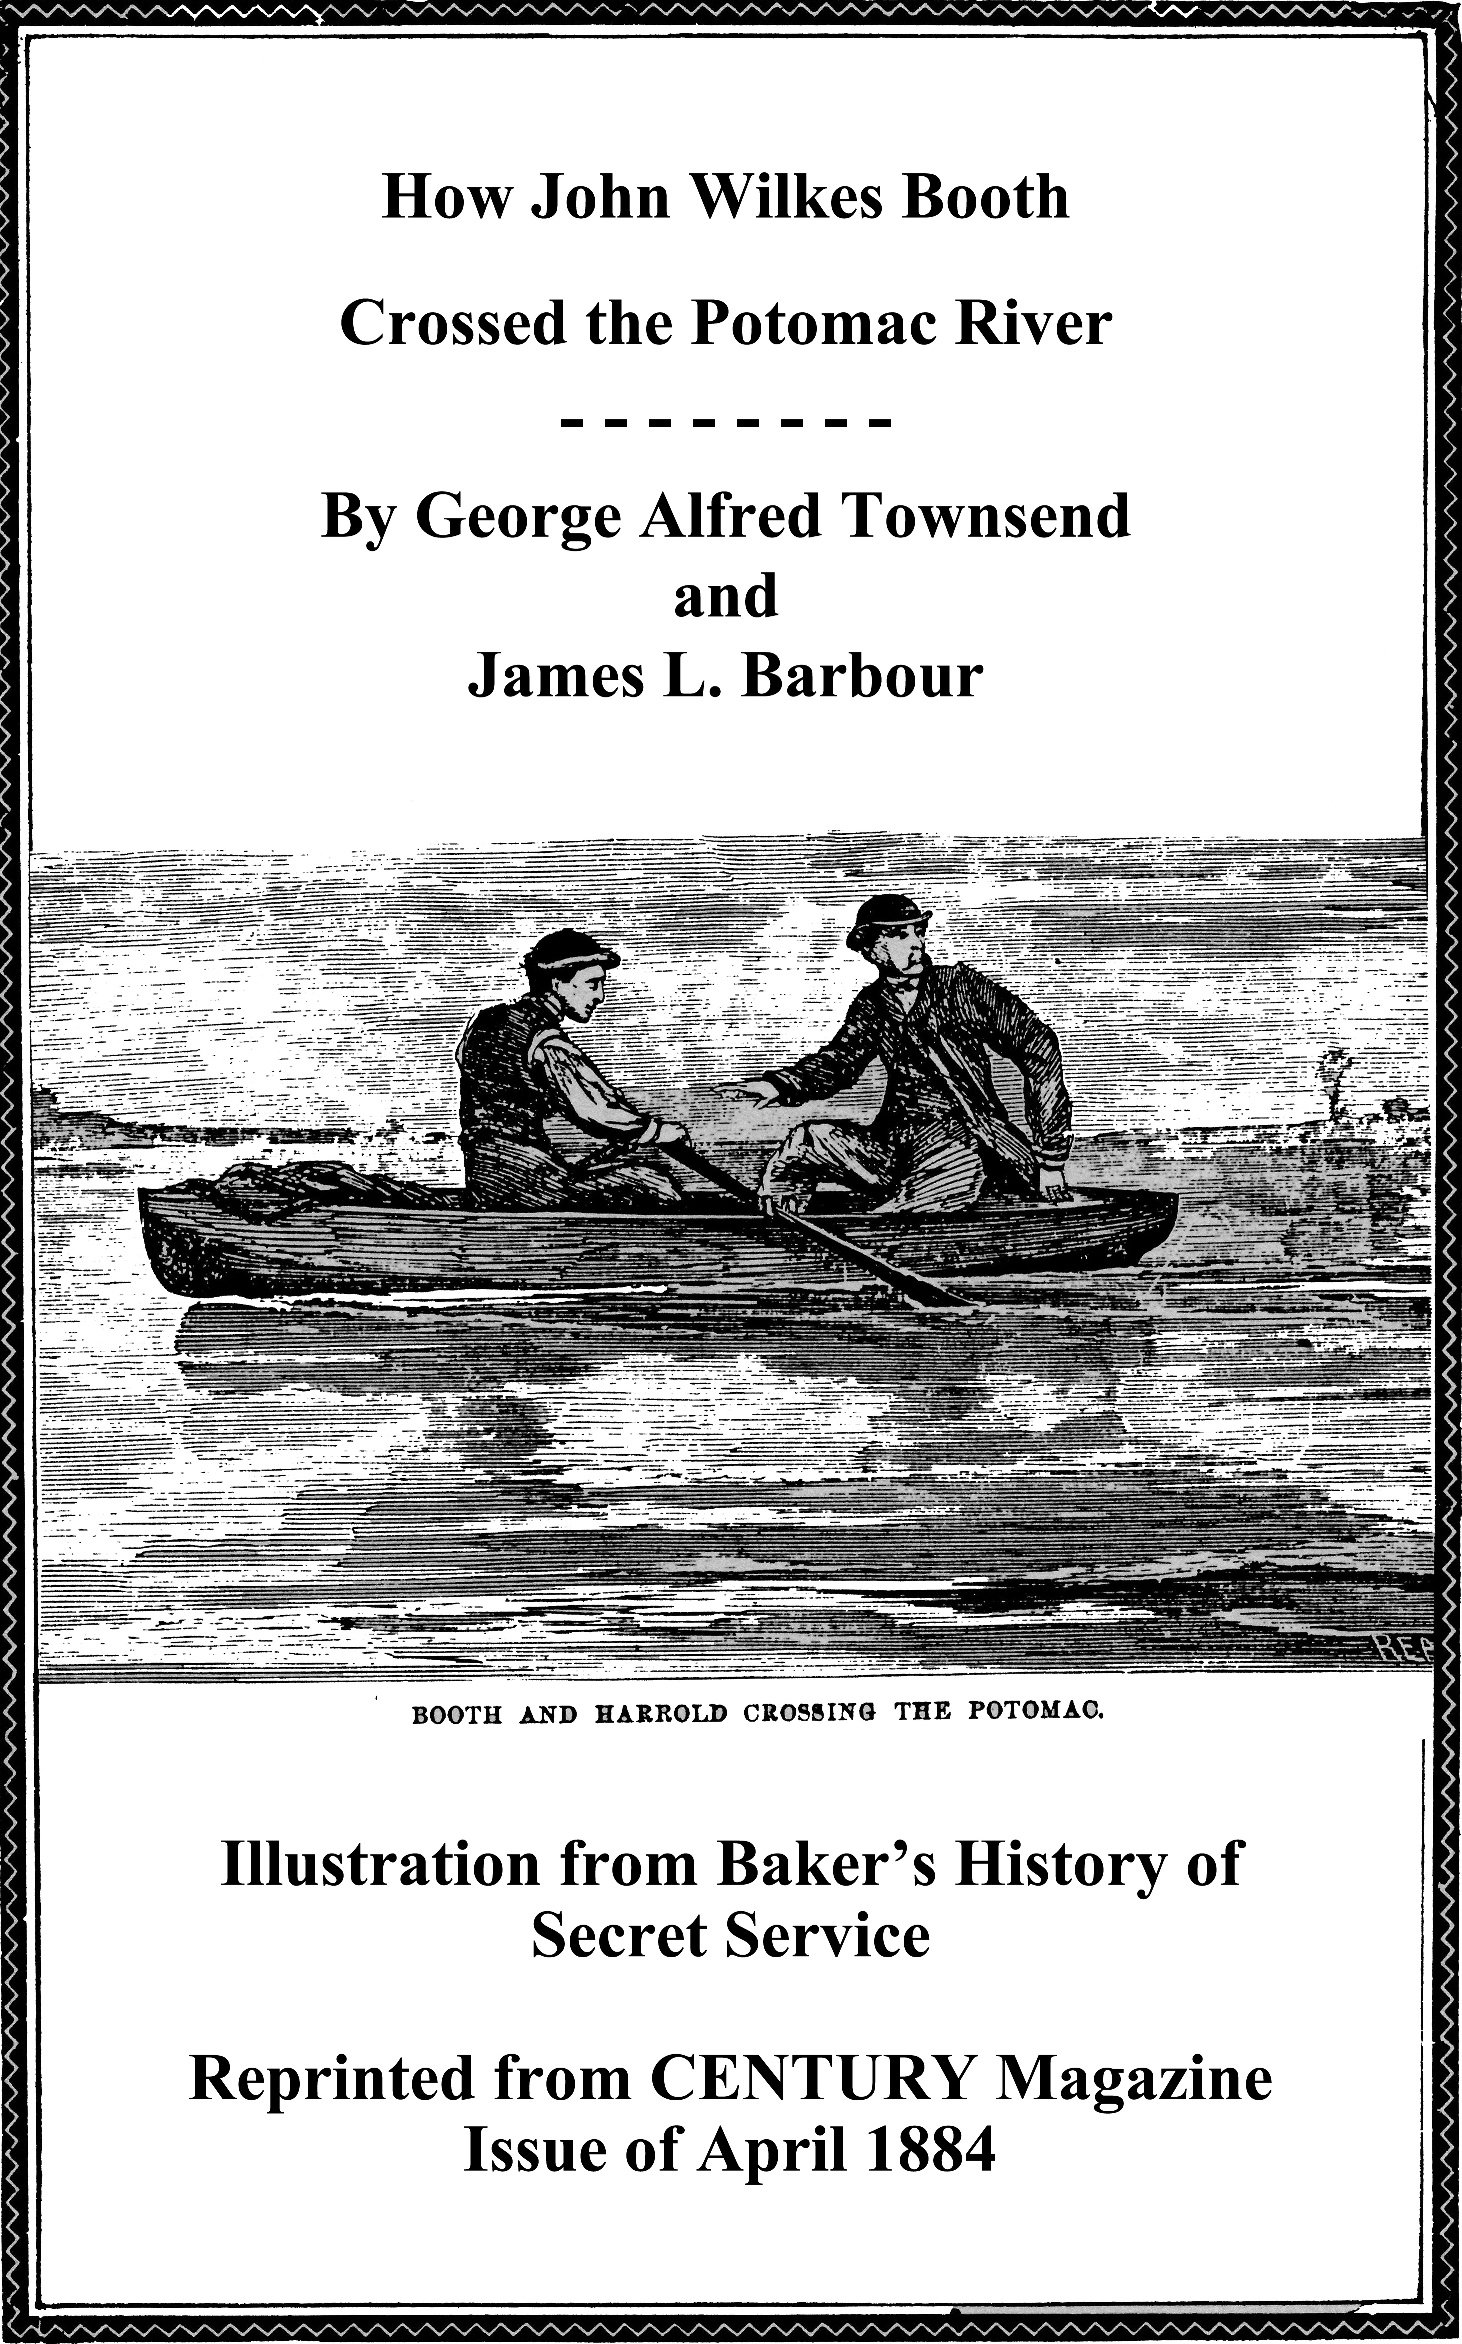 How John Wilkes Booth Crossed the Potomac River By: James L. Barbour